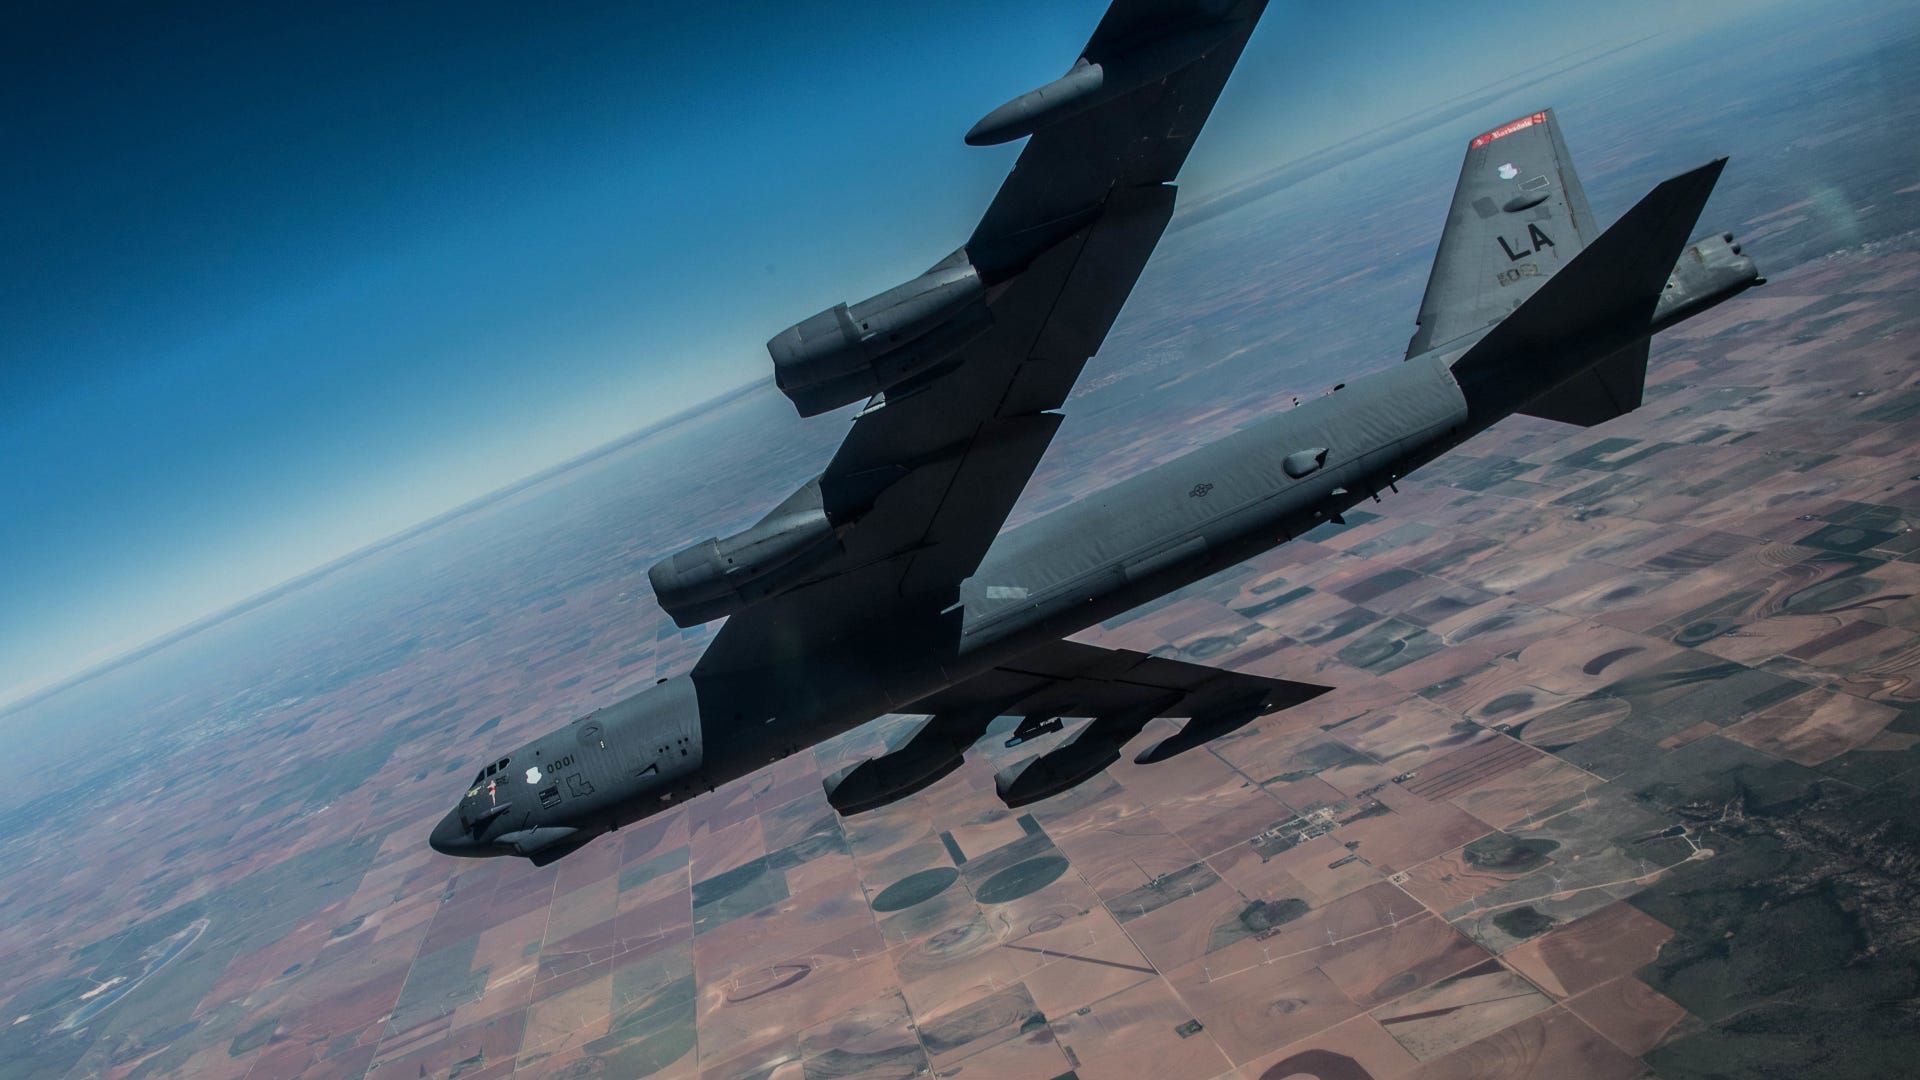 Nuclear deterrence remains Defense Department's highest priority mission